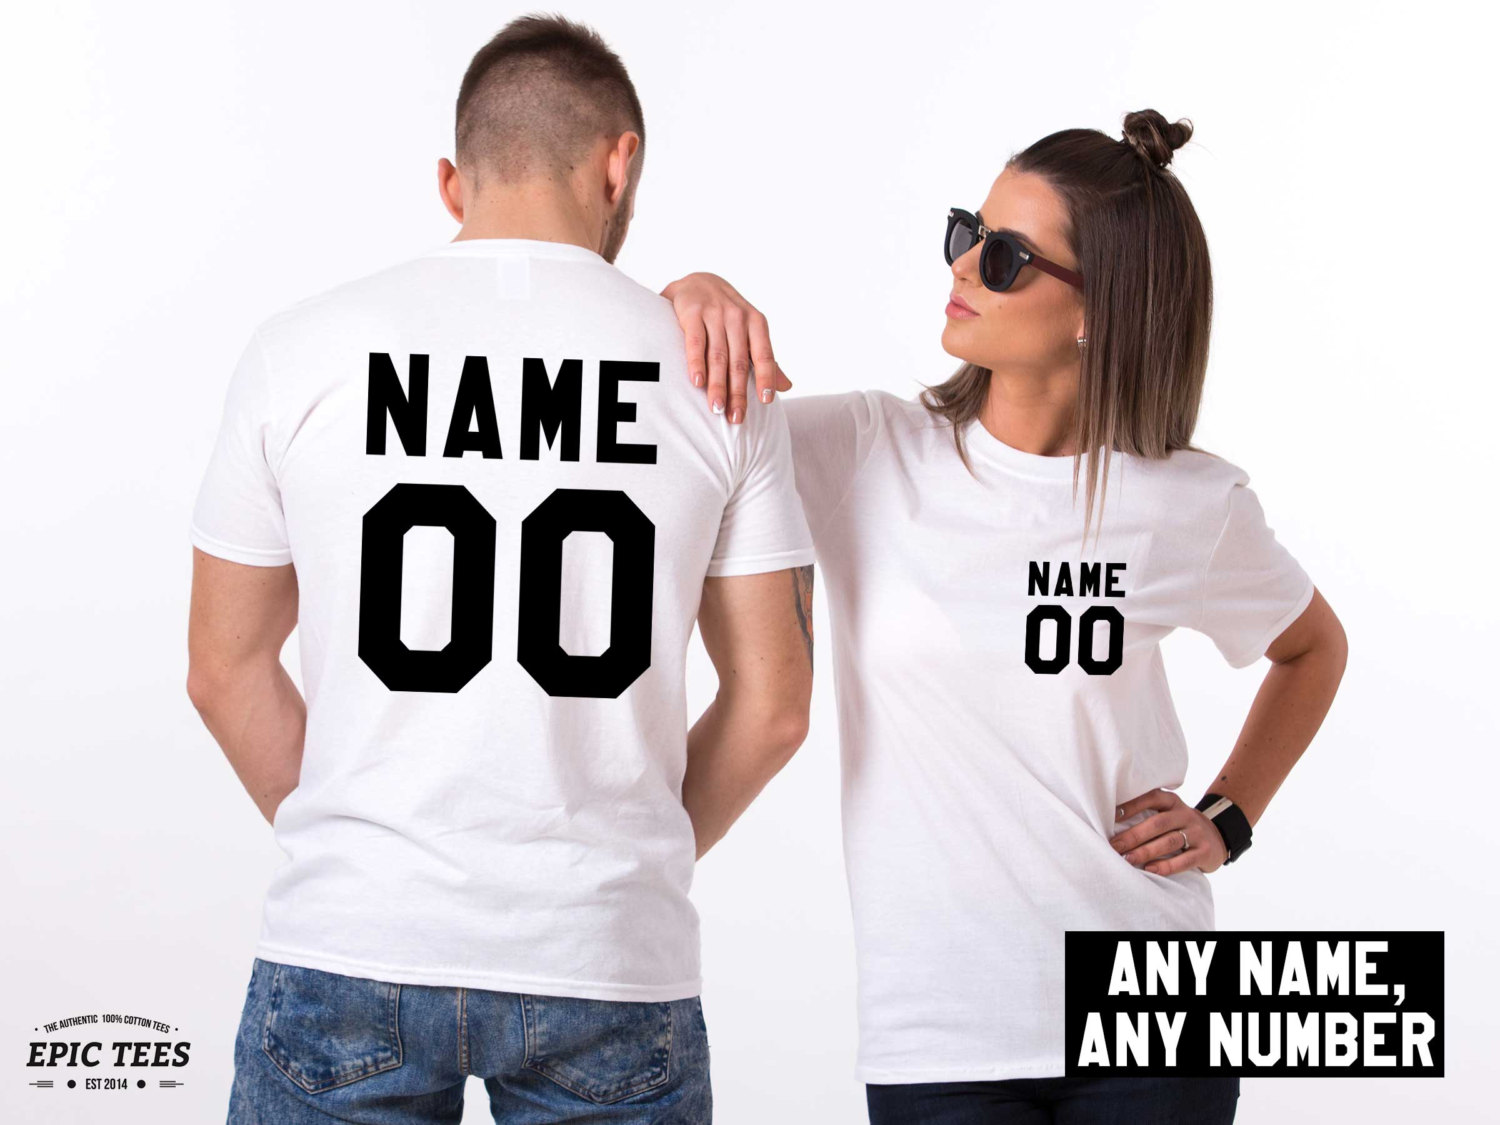 c3db62b117 Custom shirts, Personalized name shirt, Custom numbers shirt, Matching  shirts, Any name